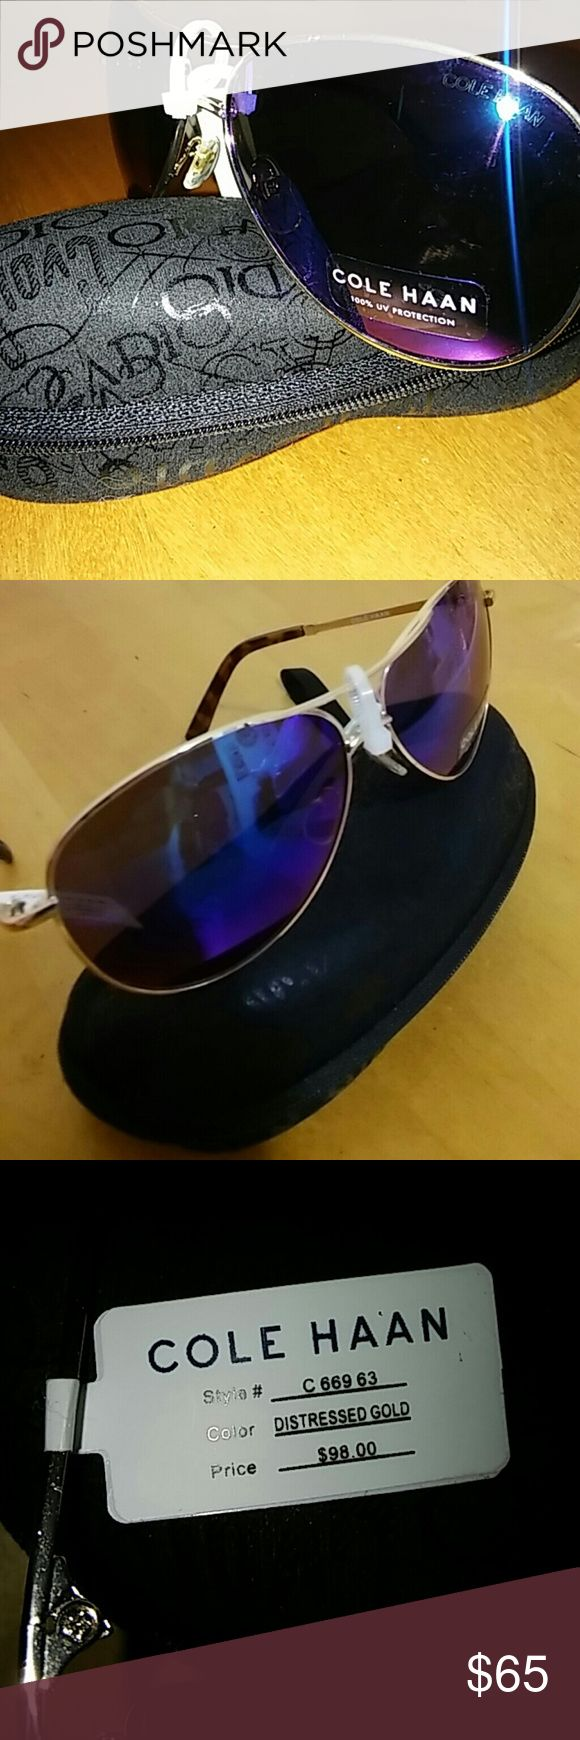 Cole Haan Aviator   Cole Haan woman's aviator sunglasses.  New With Tags. Frame Distressed Gold. 100% UV Protection.   Case is not included. Cole Haan Other